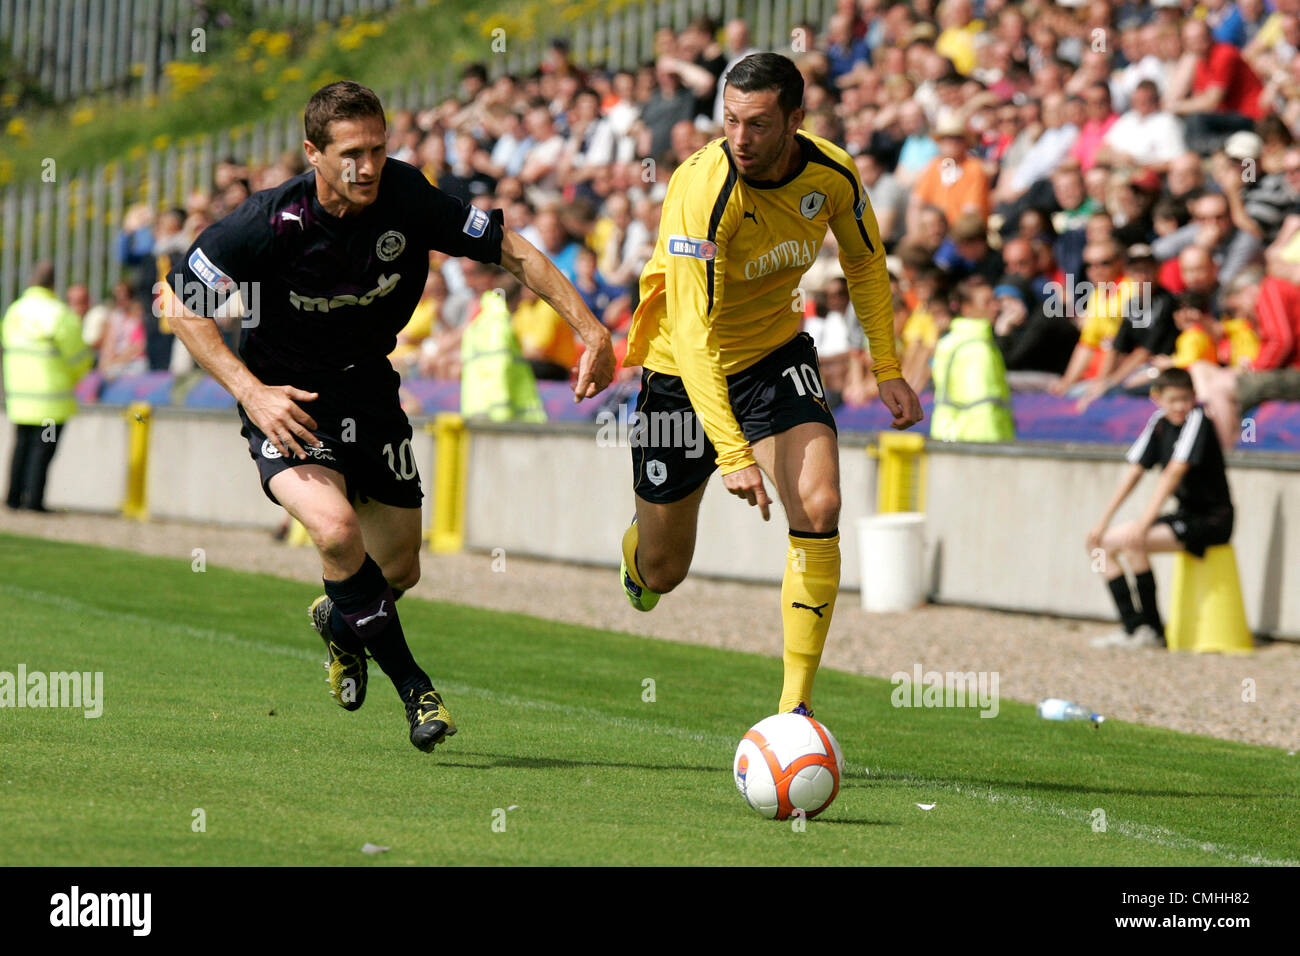 11th Aug 2012. 11.08.2012 Glasgow, Scotland. Partick Thisle's 10 Hugh Murray and  Falkirk's 10 Andy Hawarth in action - Stock Image